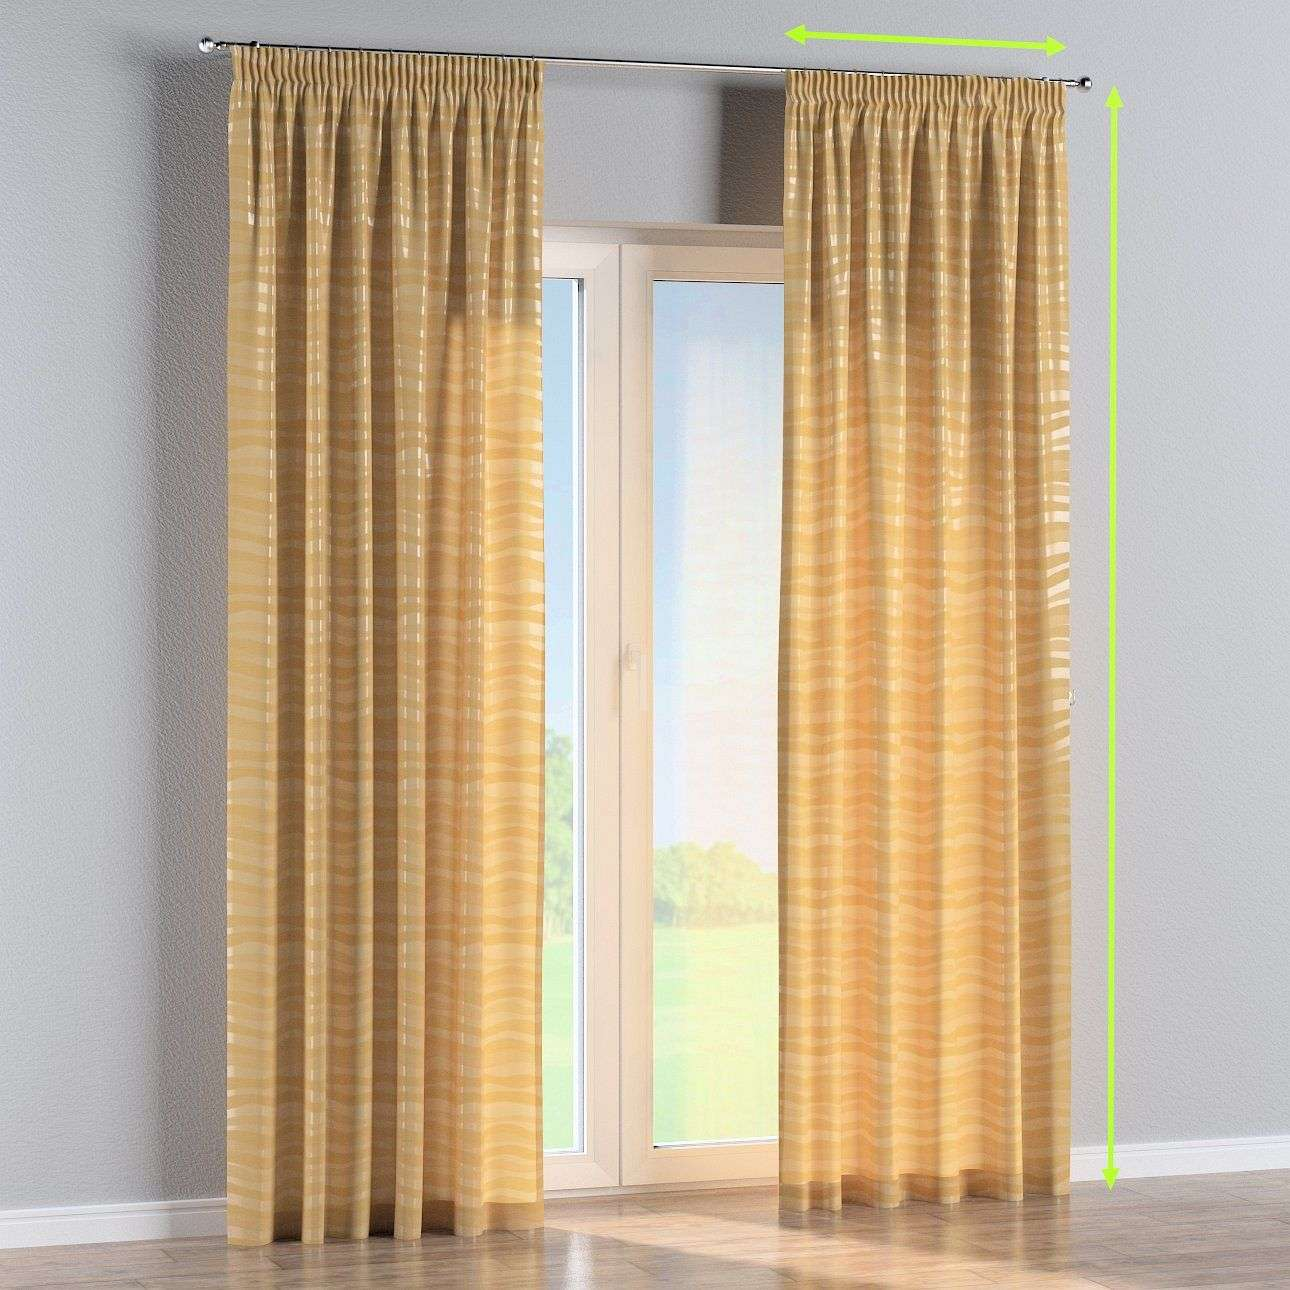 Pencil pleat lined curtains in collection Damasco, fabric: 141-74